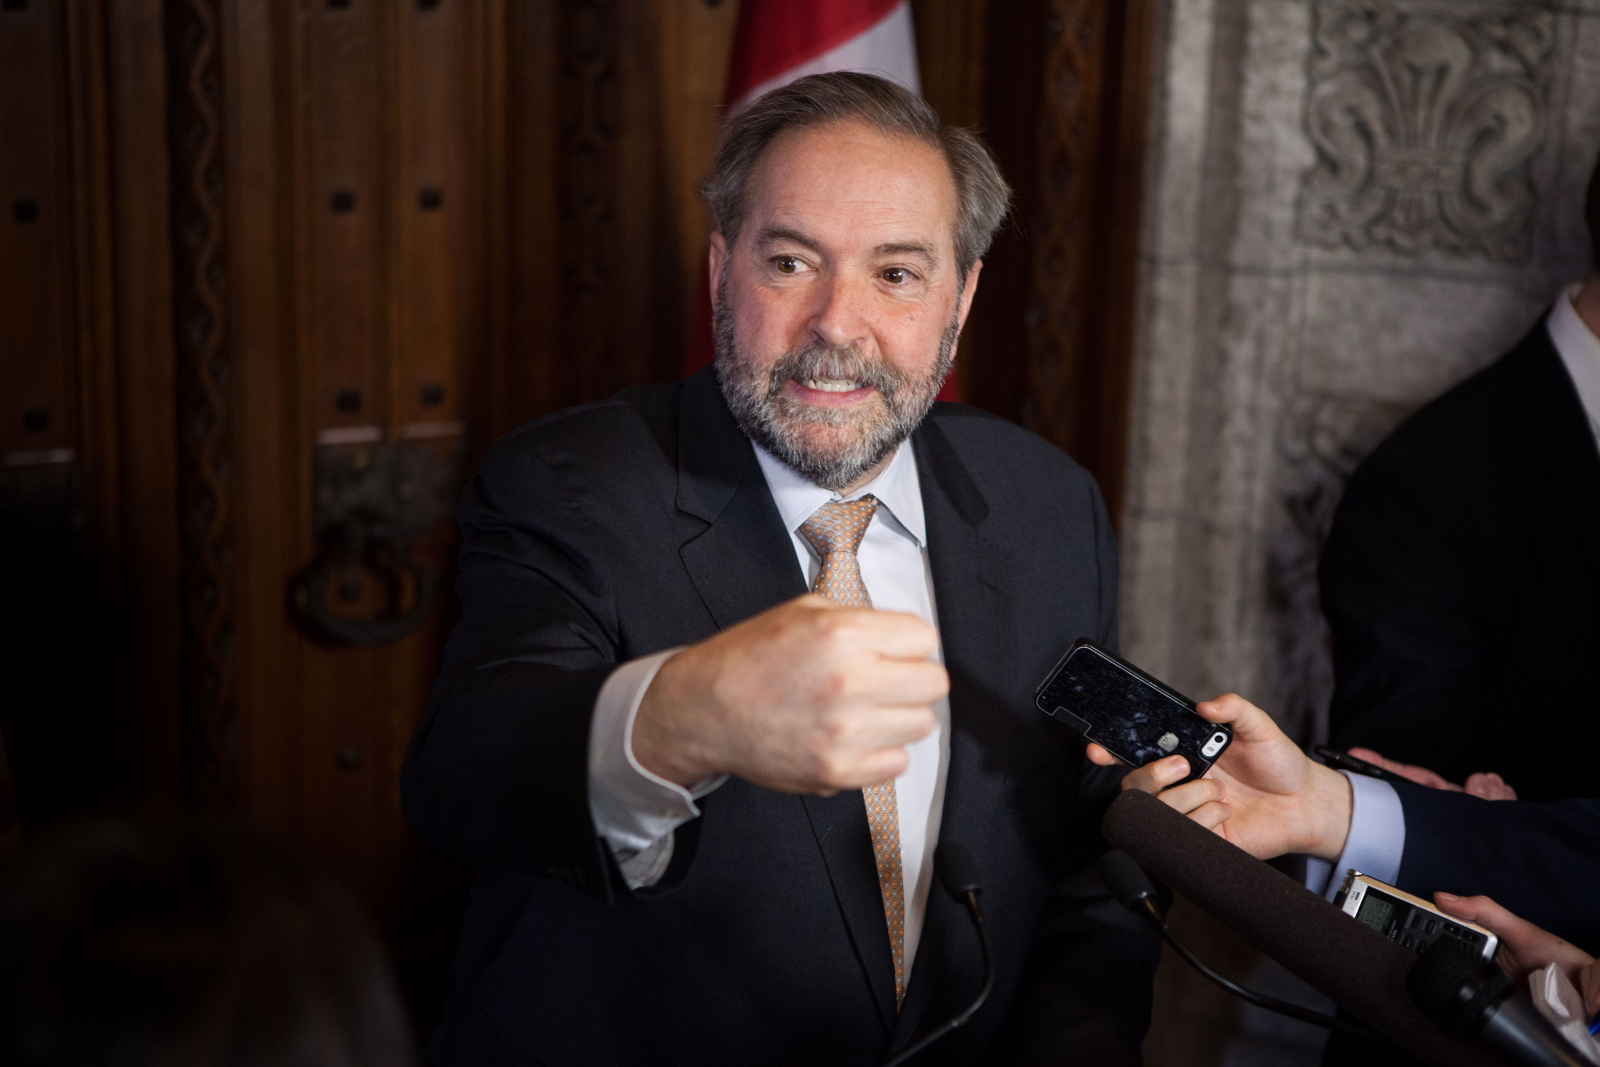 Tom Mulcair, angry, punching, house of commons